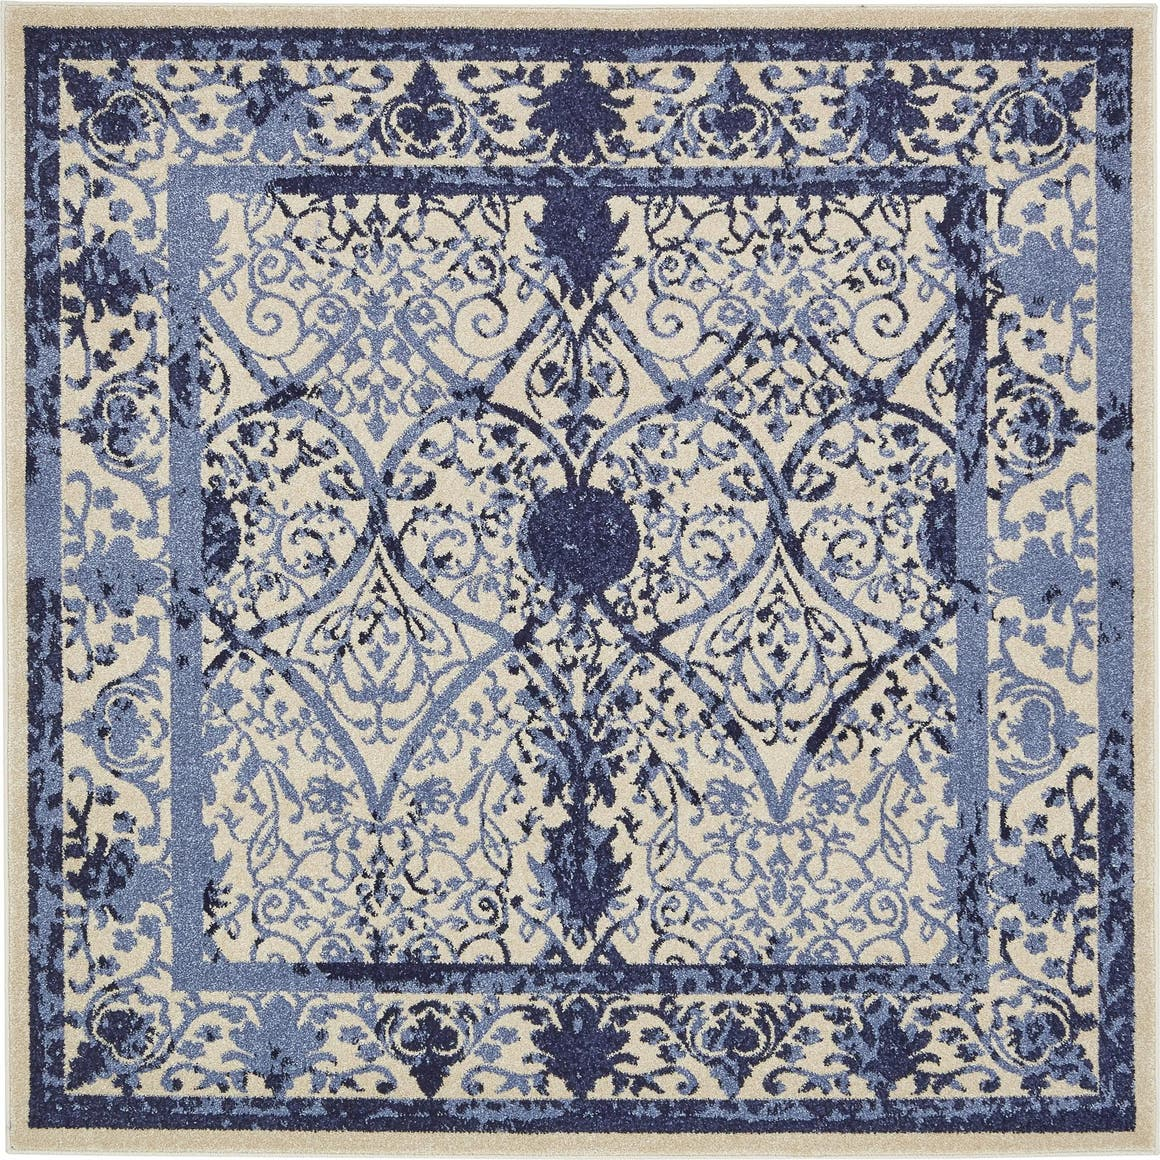 6' x 6' Vista Square Rug main image